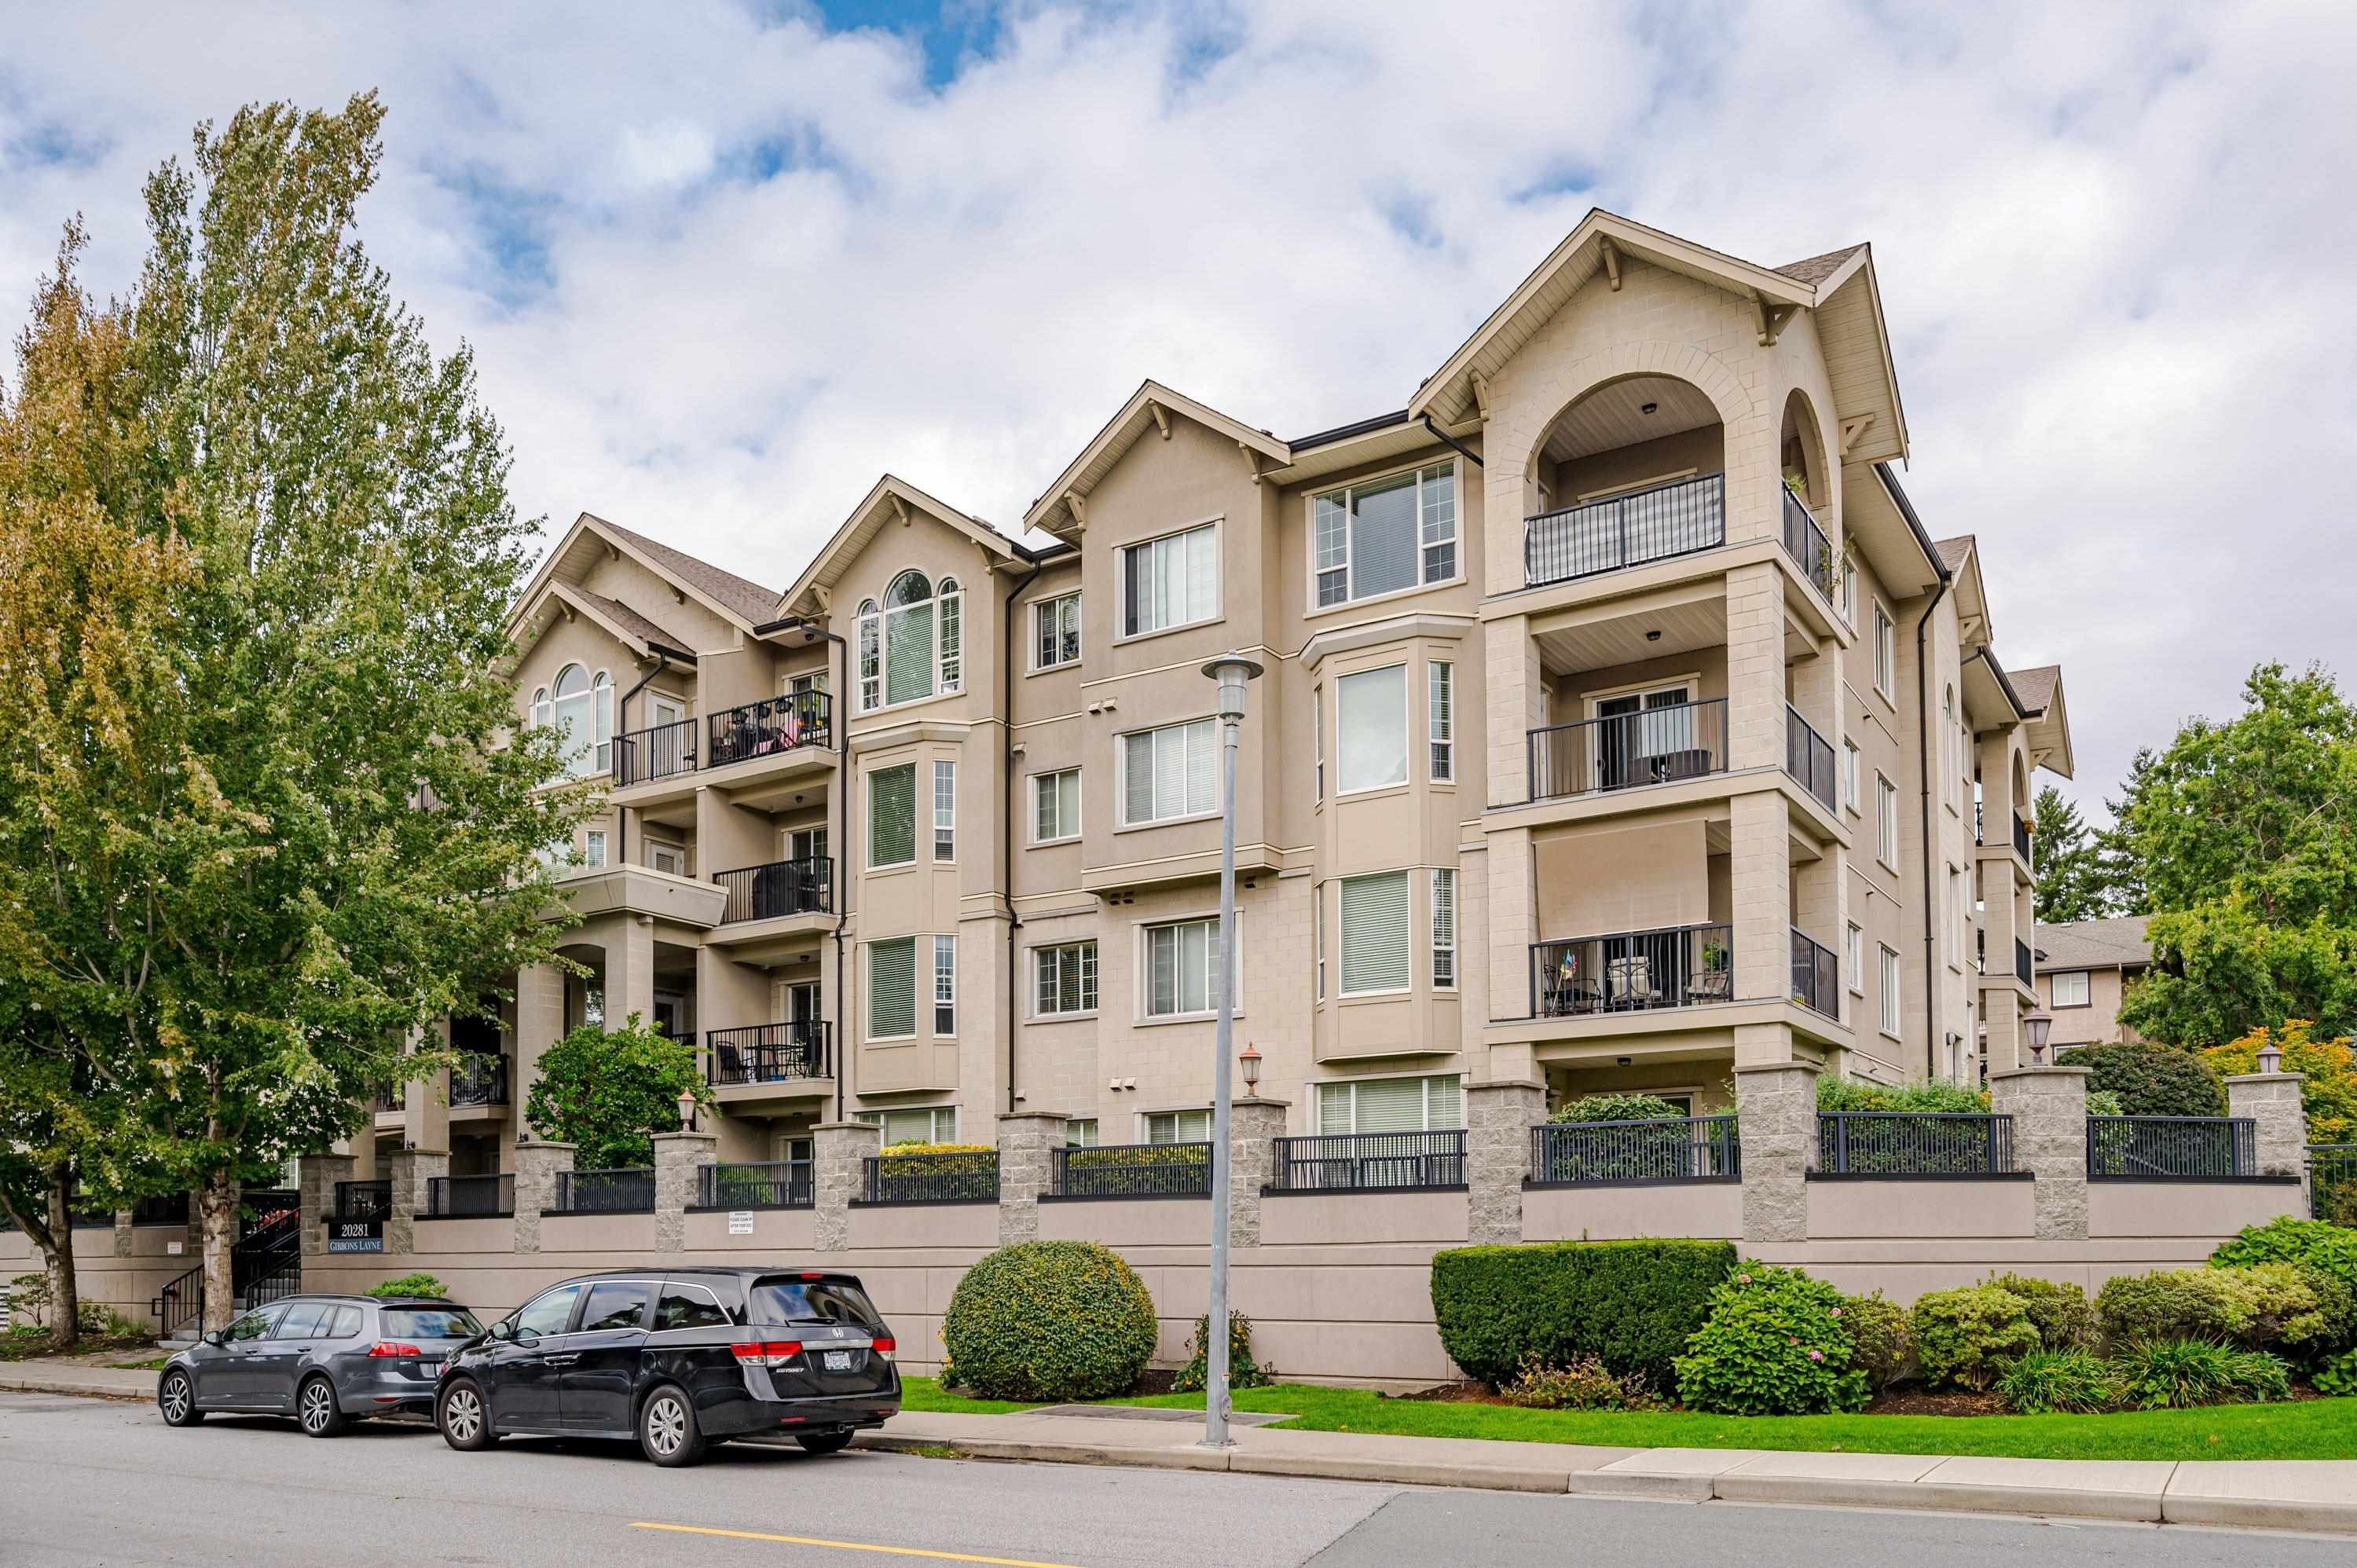 """Main Photo: 411 20281 53A Avenue in Langley: Langley City Condo for sale in """"Gibbons Layne"""" : MLS®# R2621680"""